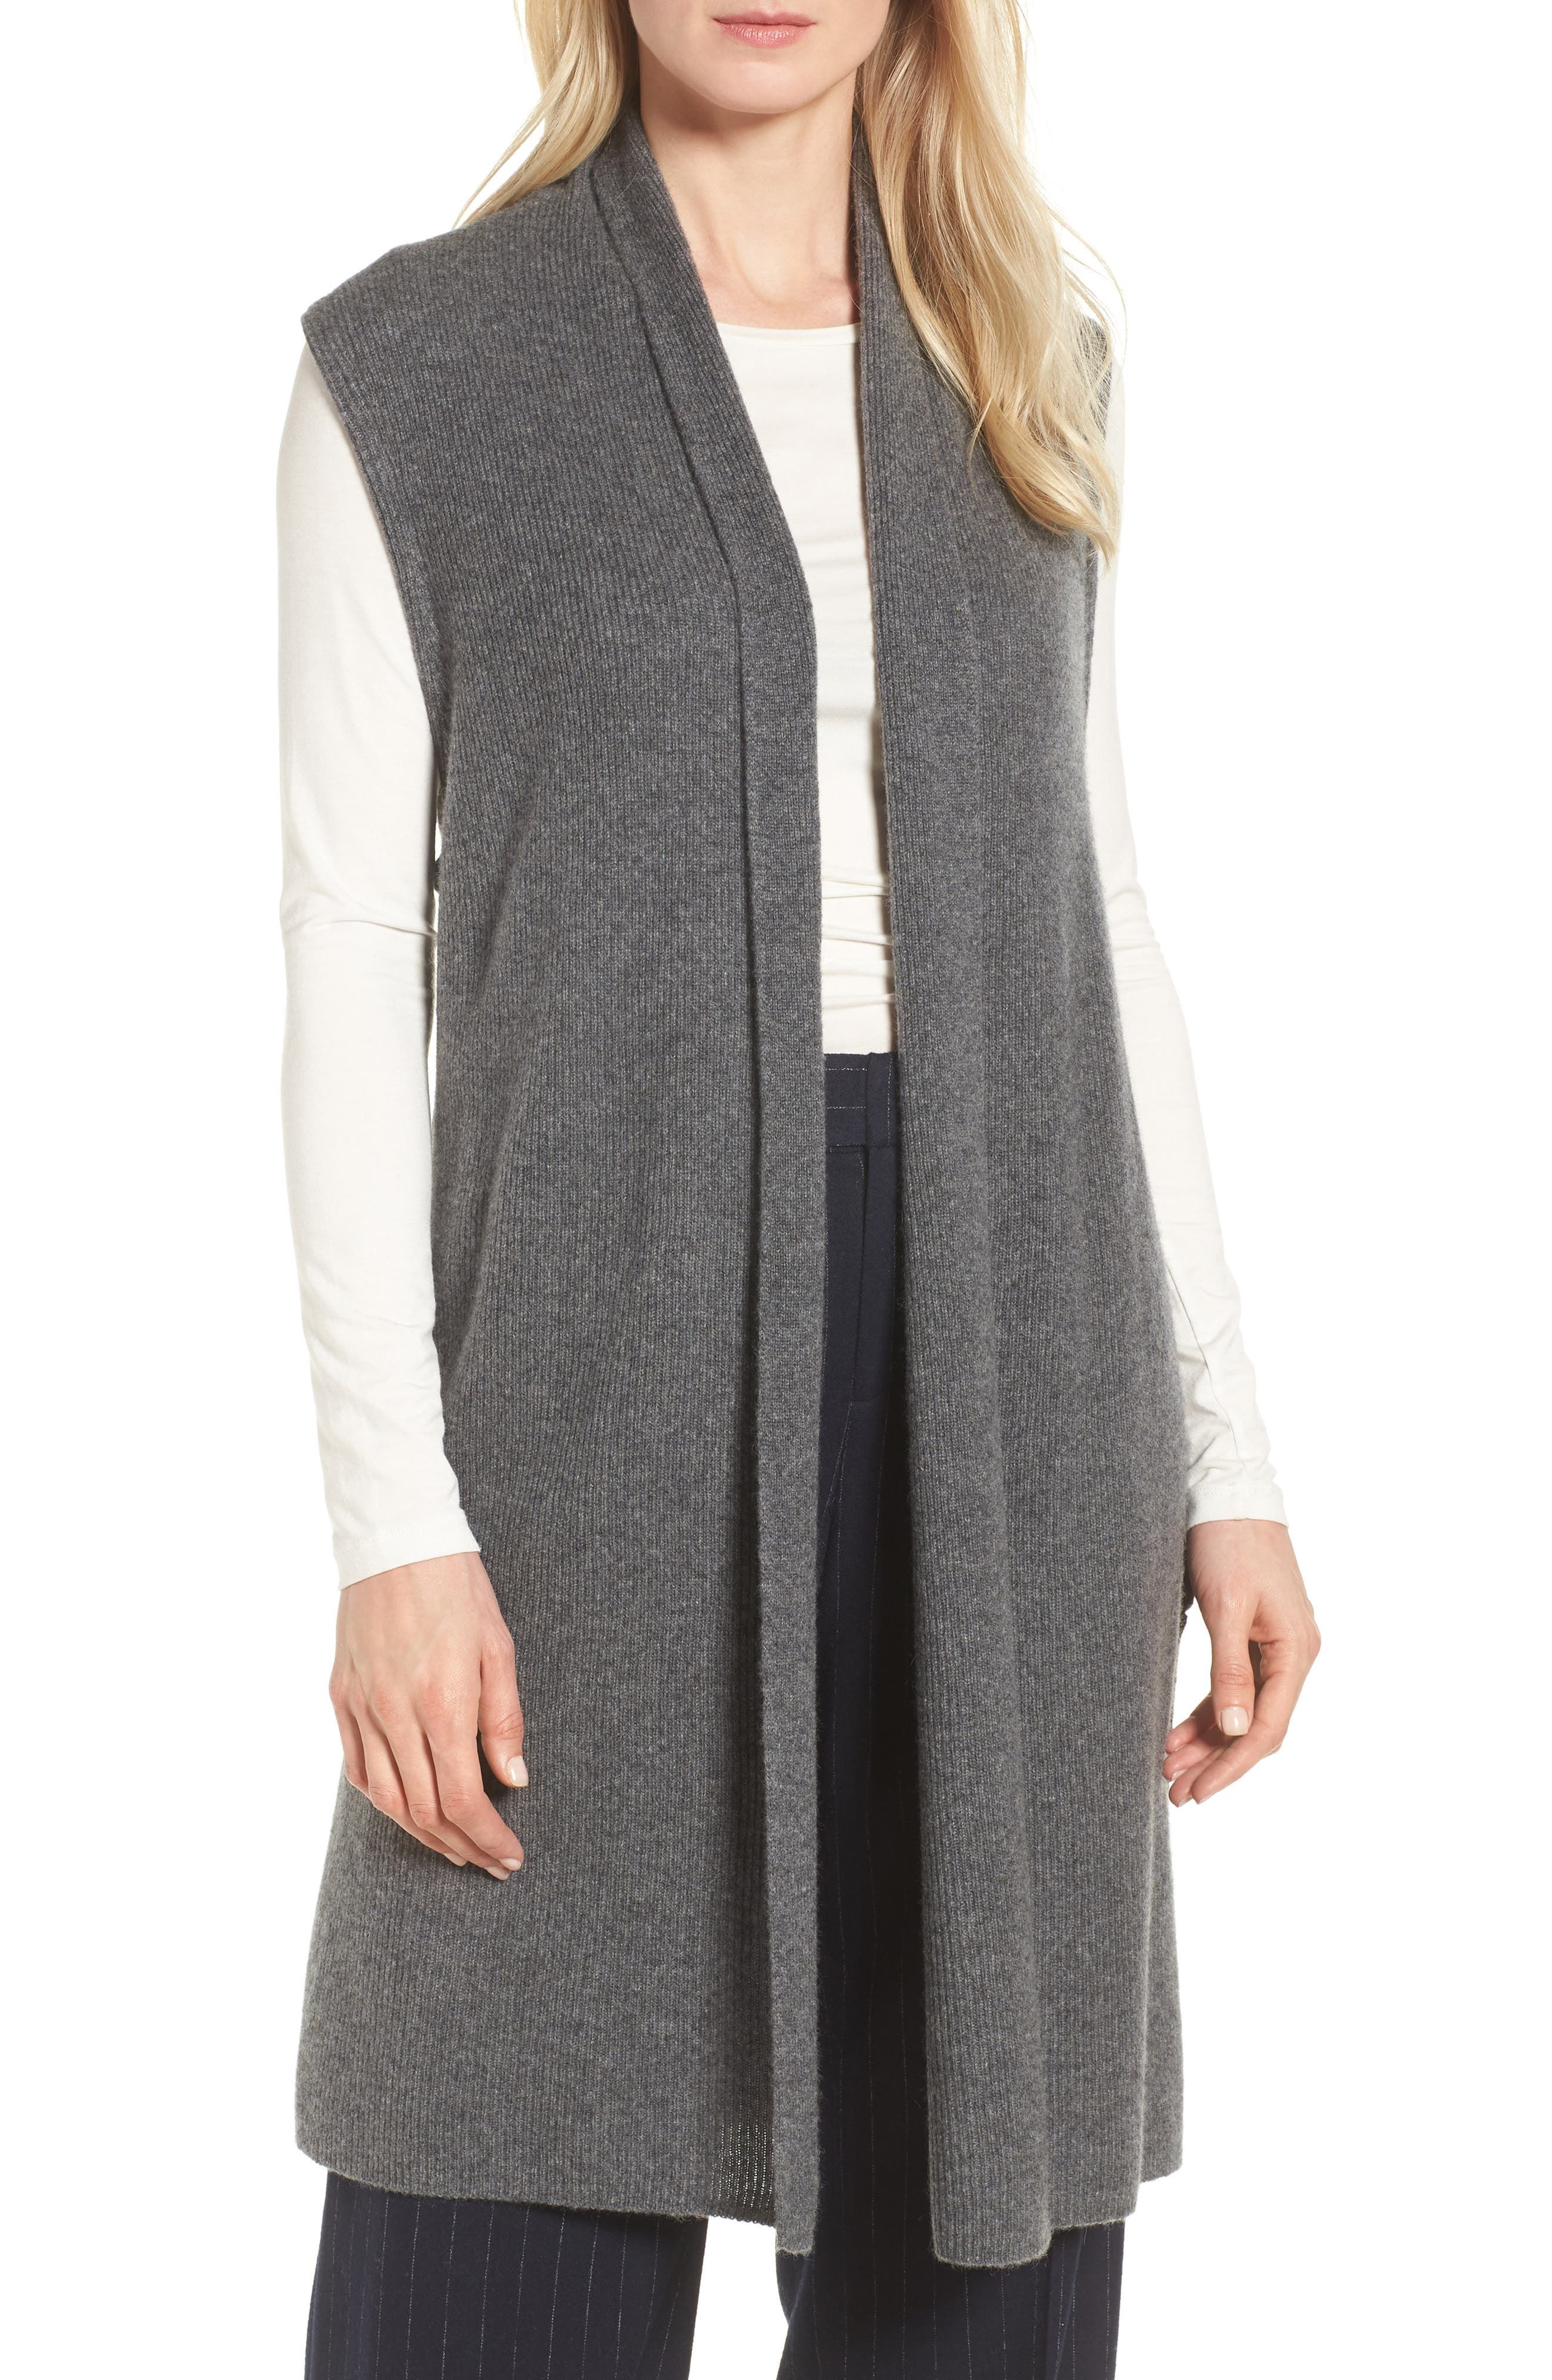 Ribbed Cashmere Vest,                             Main thumbnail 1, color,                             Grey Dark Heather